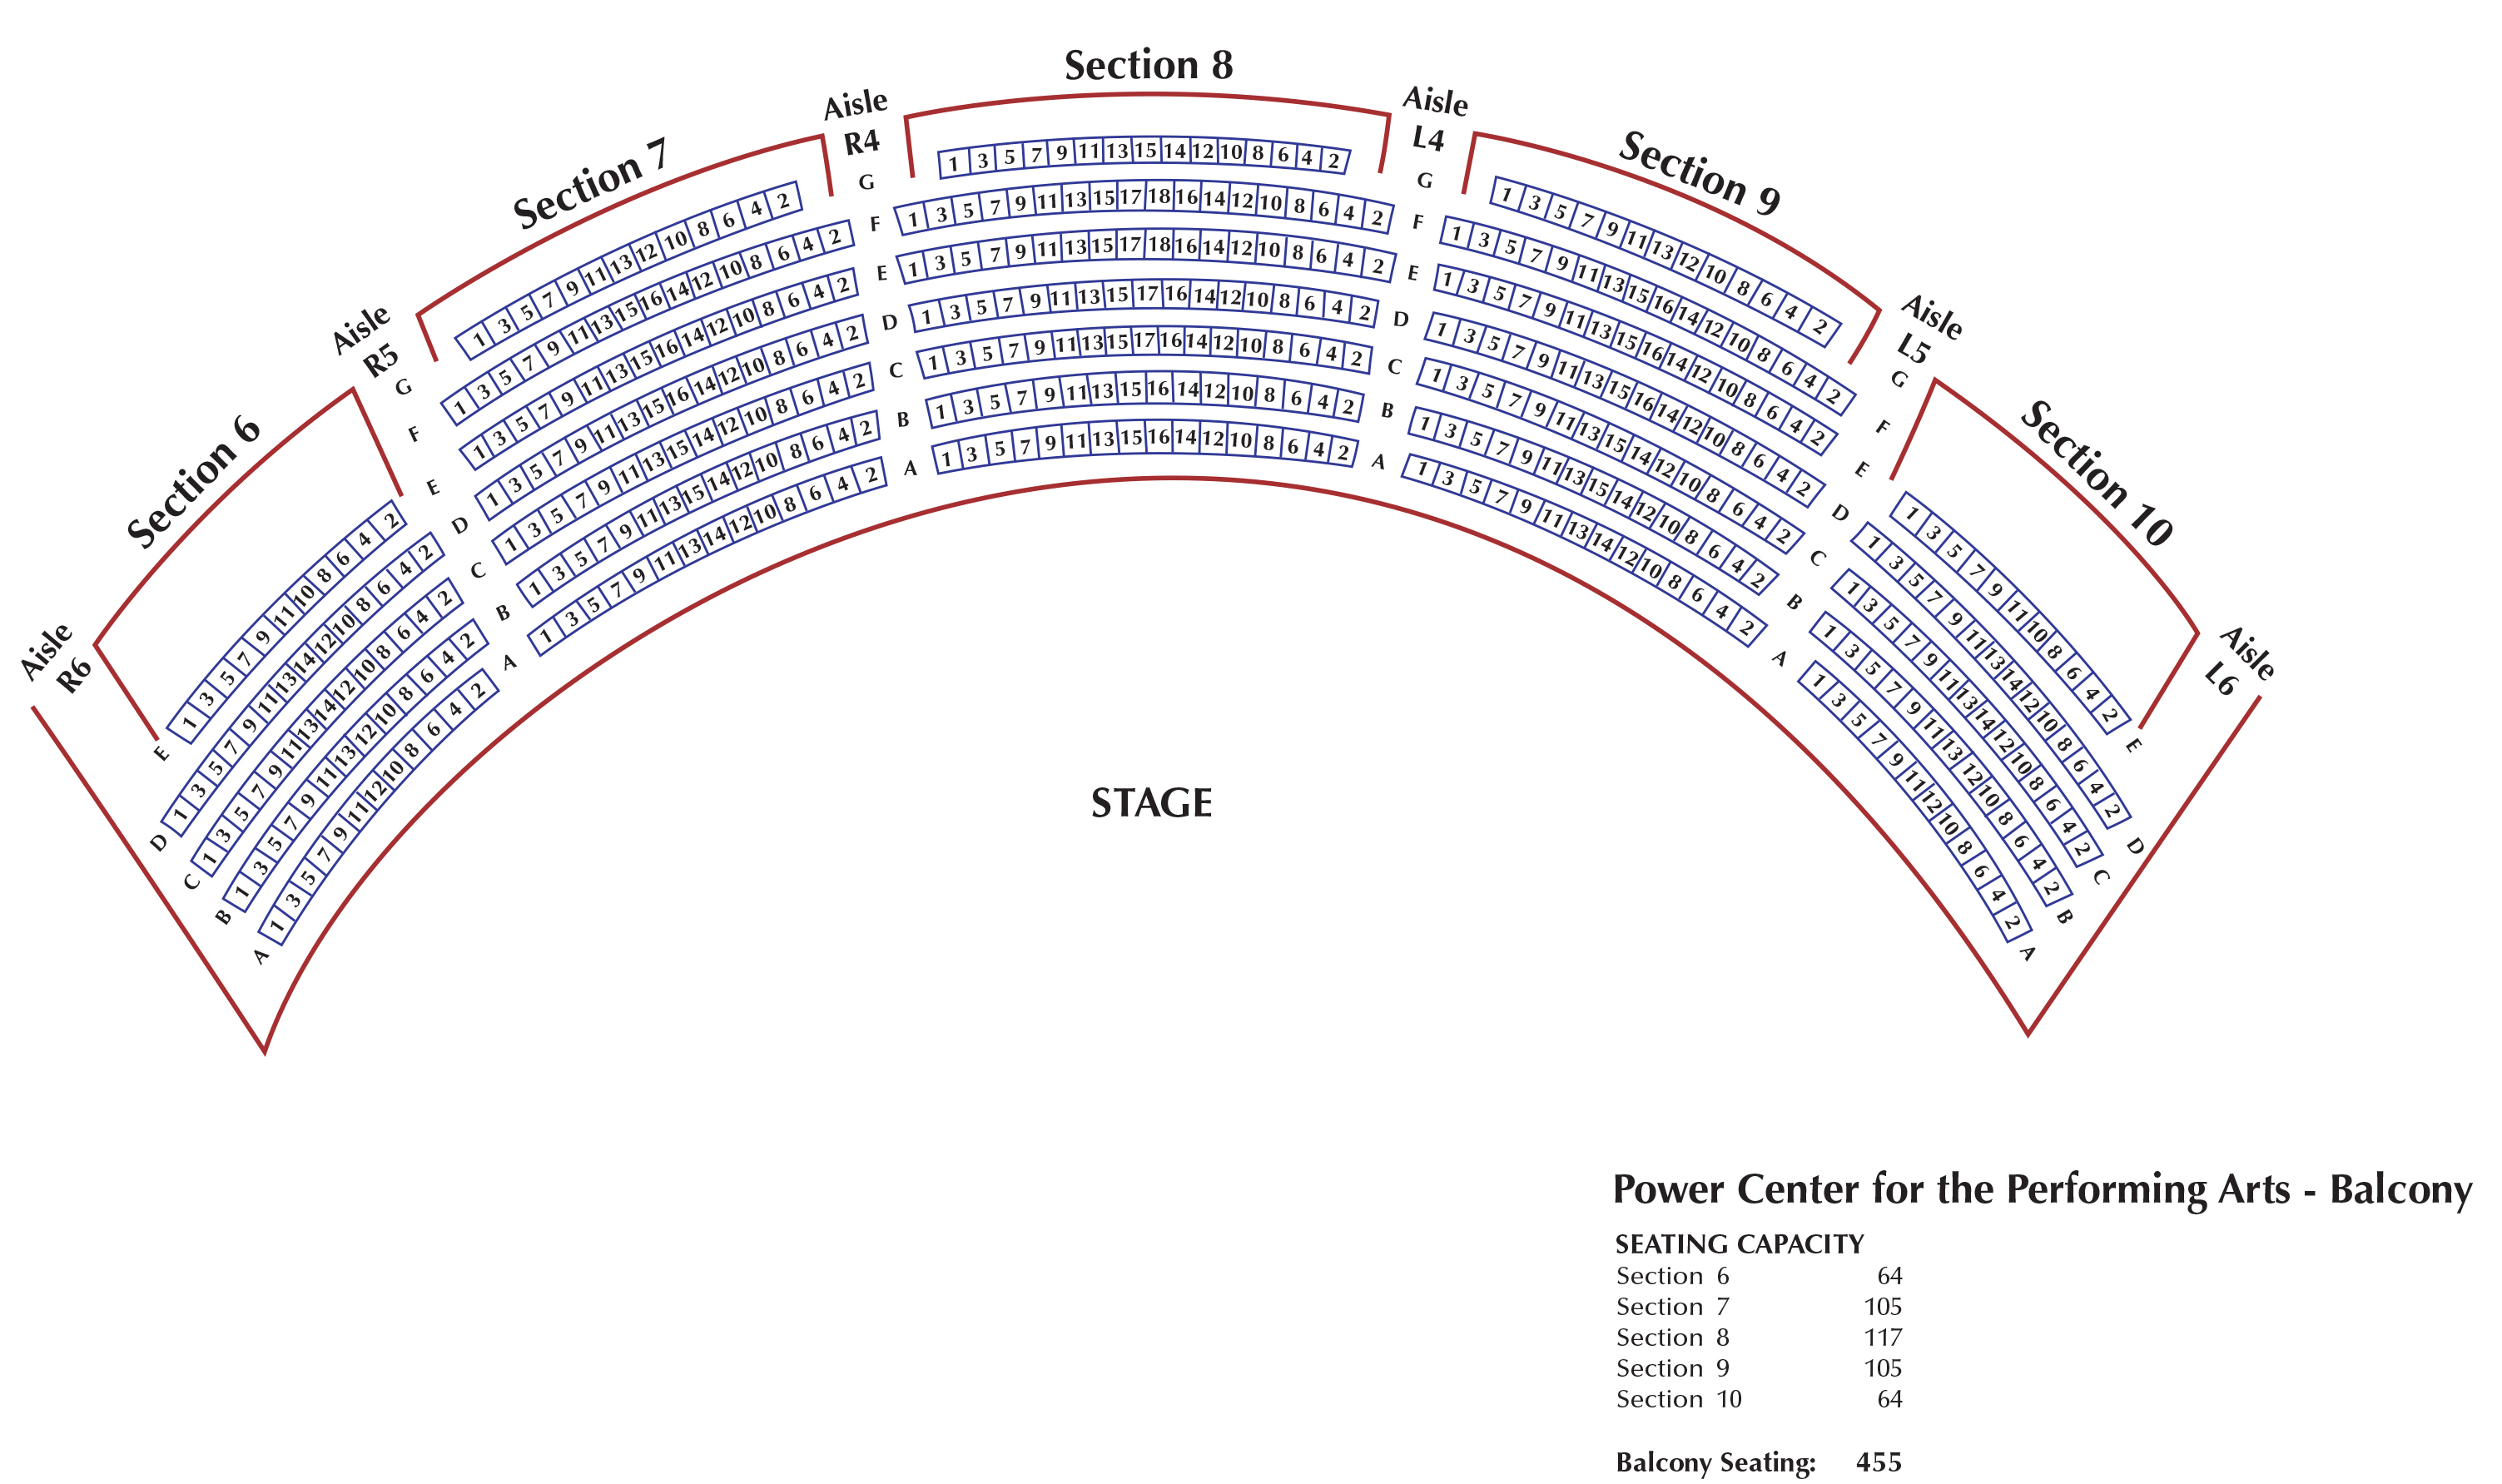 Power Center U M School Of Music Theatre Dance Wiring Diagram 6 Way Seat Download Seating Chart For Orchestra Pdf Balcony